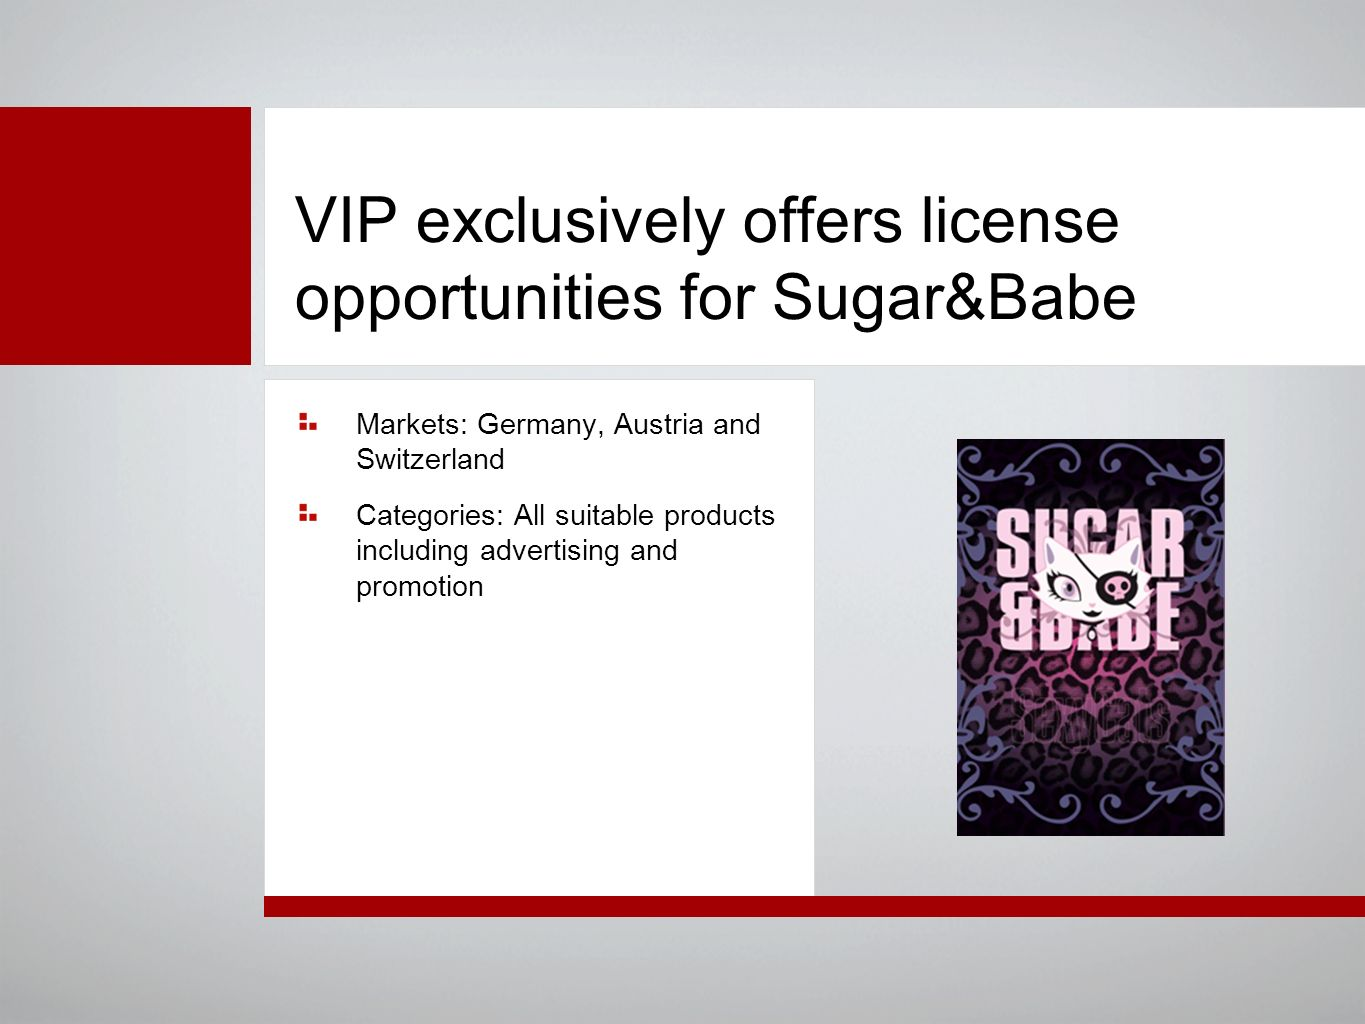 VIP exclusively offers license opportunities for Sugar&Babe Markets: Germany, Austria and Switzerland Categories: All suitable products including advertising and promotion